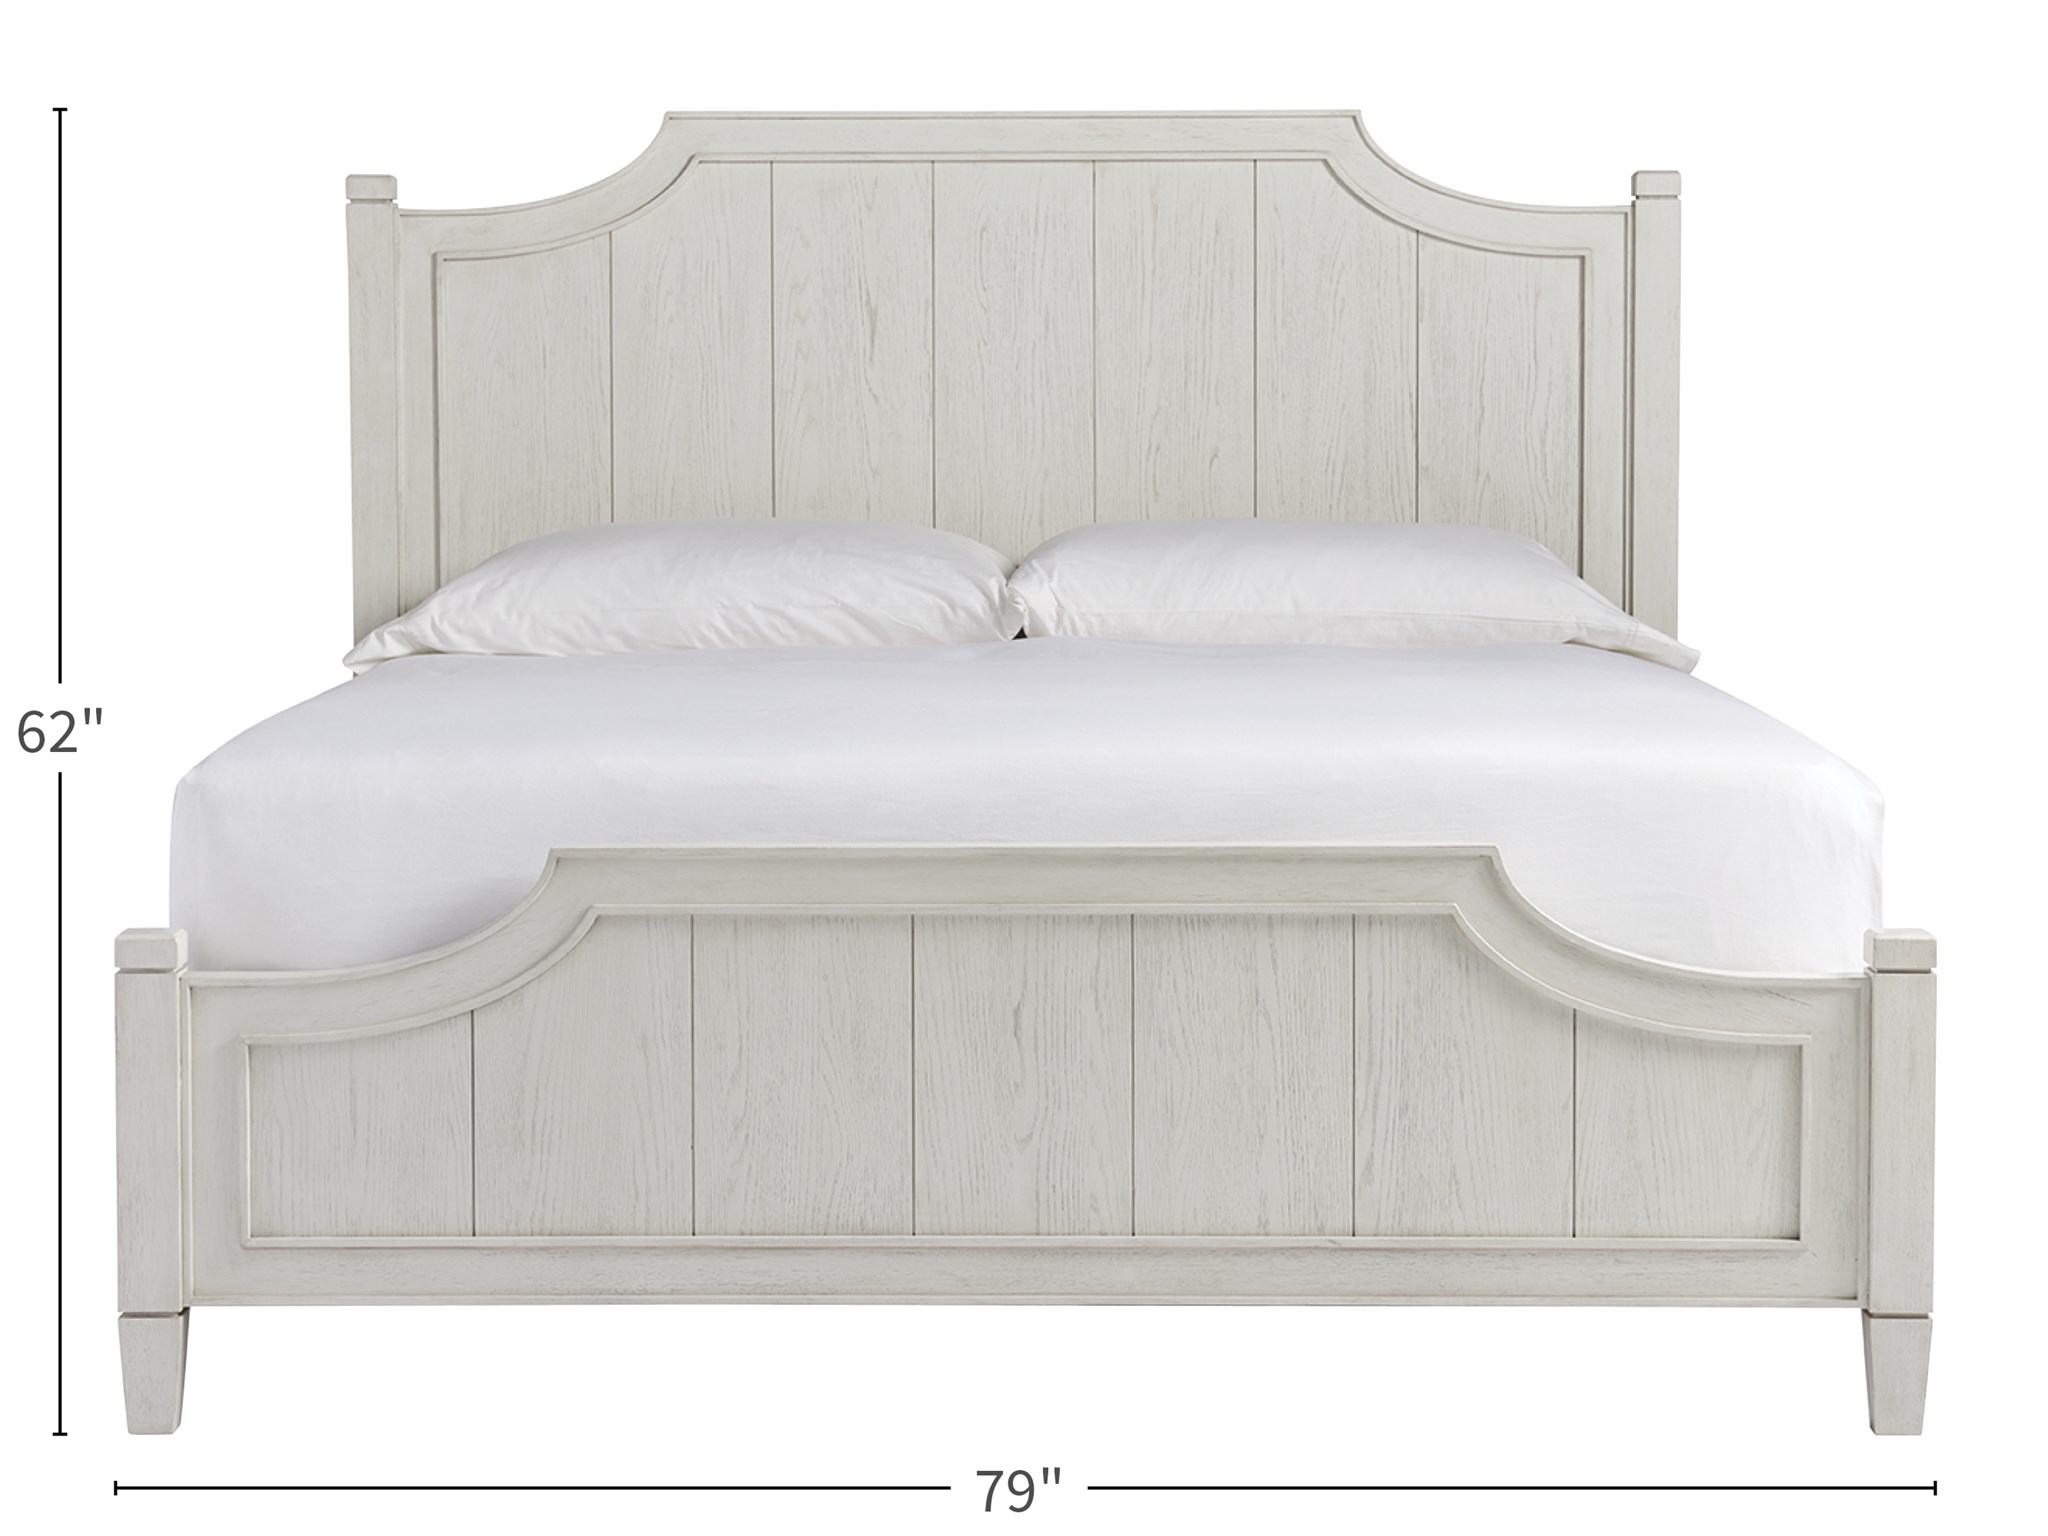 Surfside King Bed